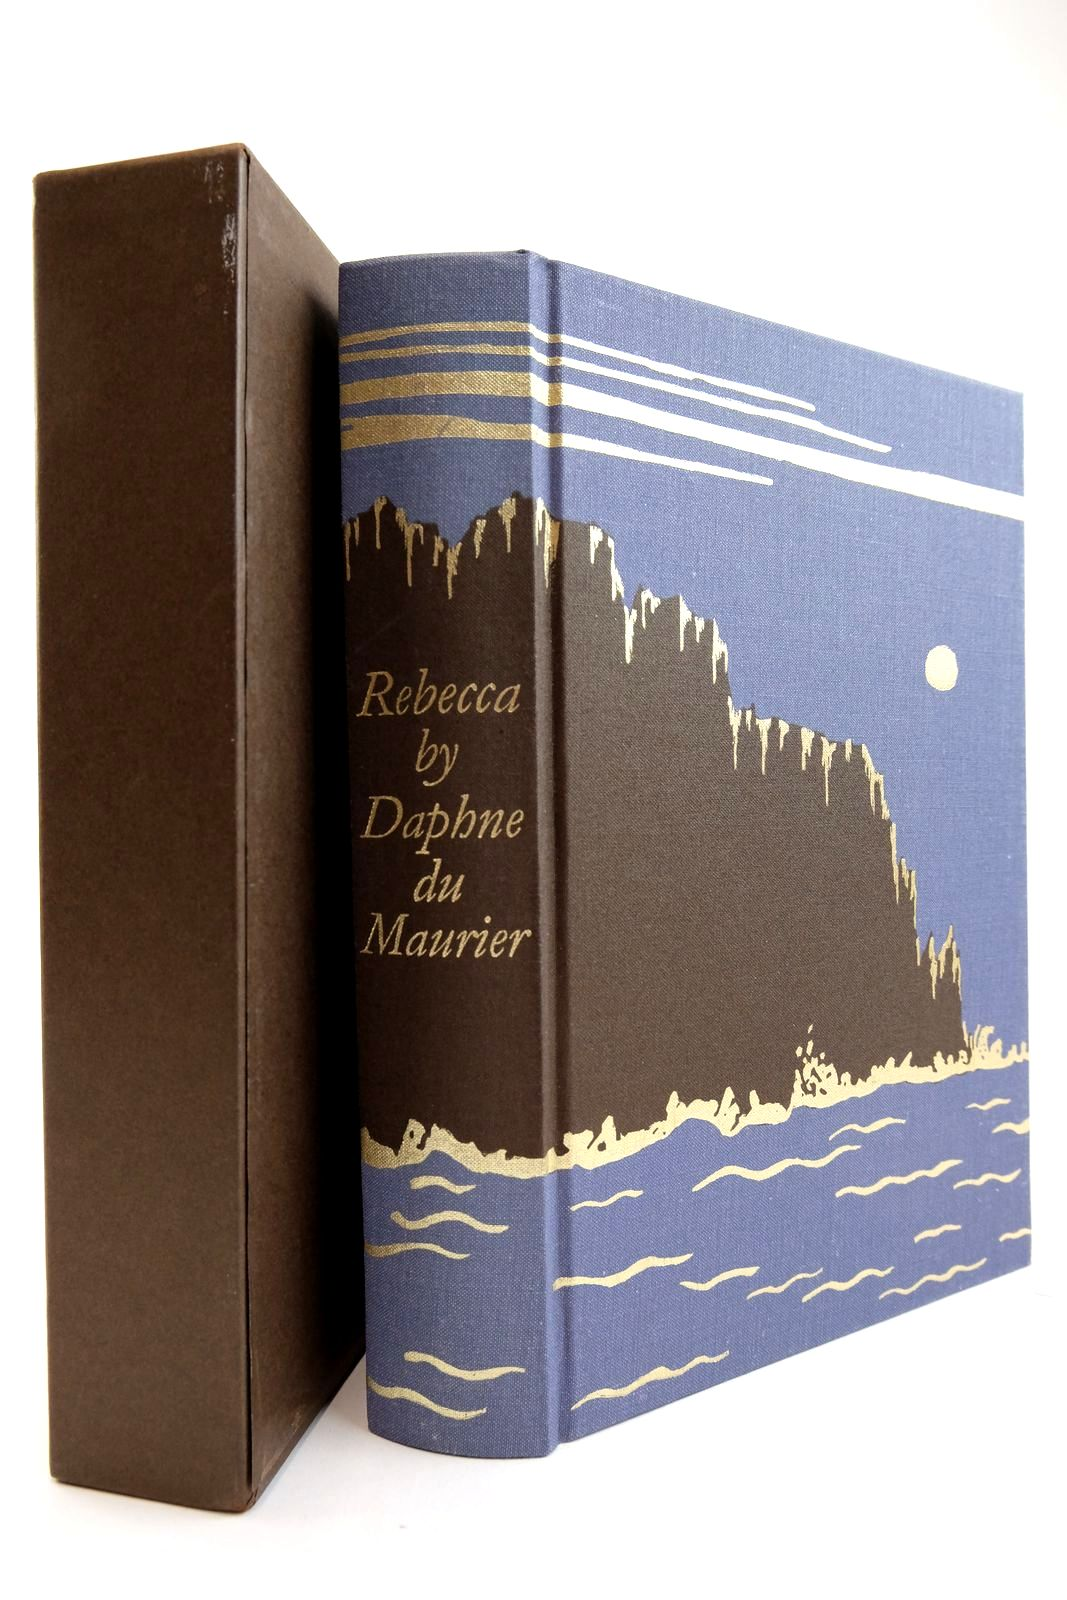 Photo of REBECCA written by Du Maurier, Daphne illustrated by Clark, Emma Chichester published by Folio Society (STOCK CODE: 2134275)  for sale by Stella & Rose's Books